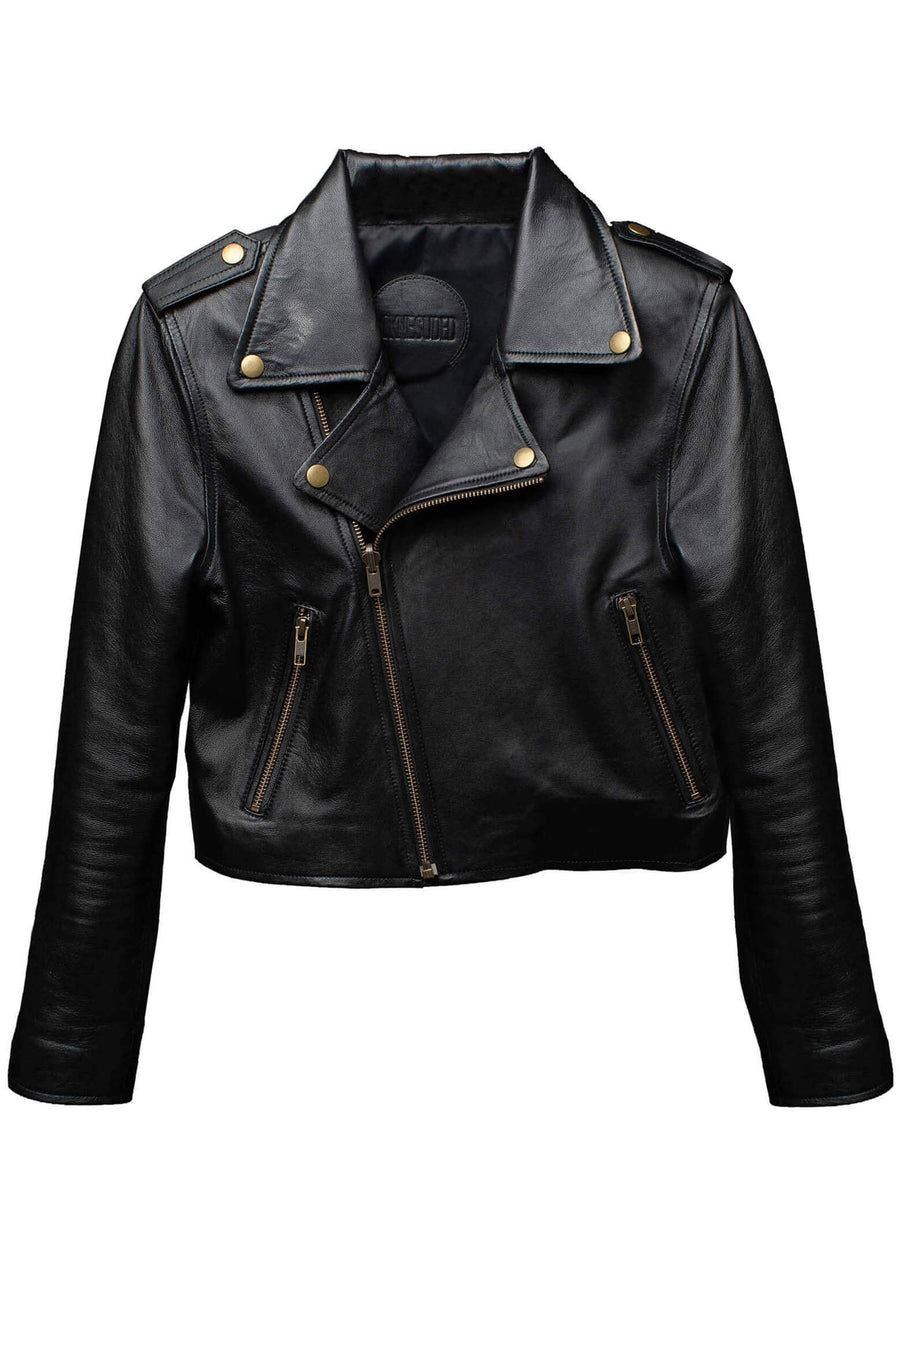 Oknesuded The Original Reversible Leather Jacket from The New Trend